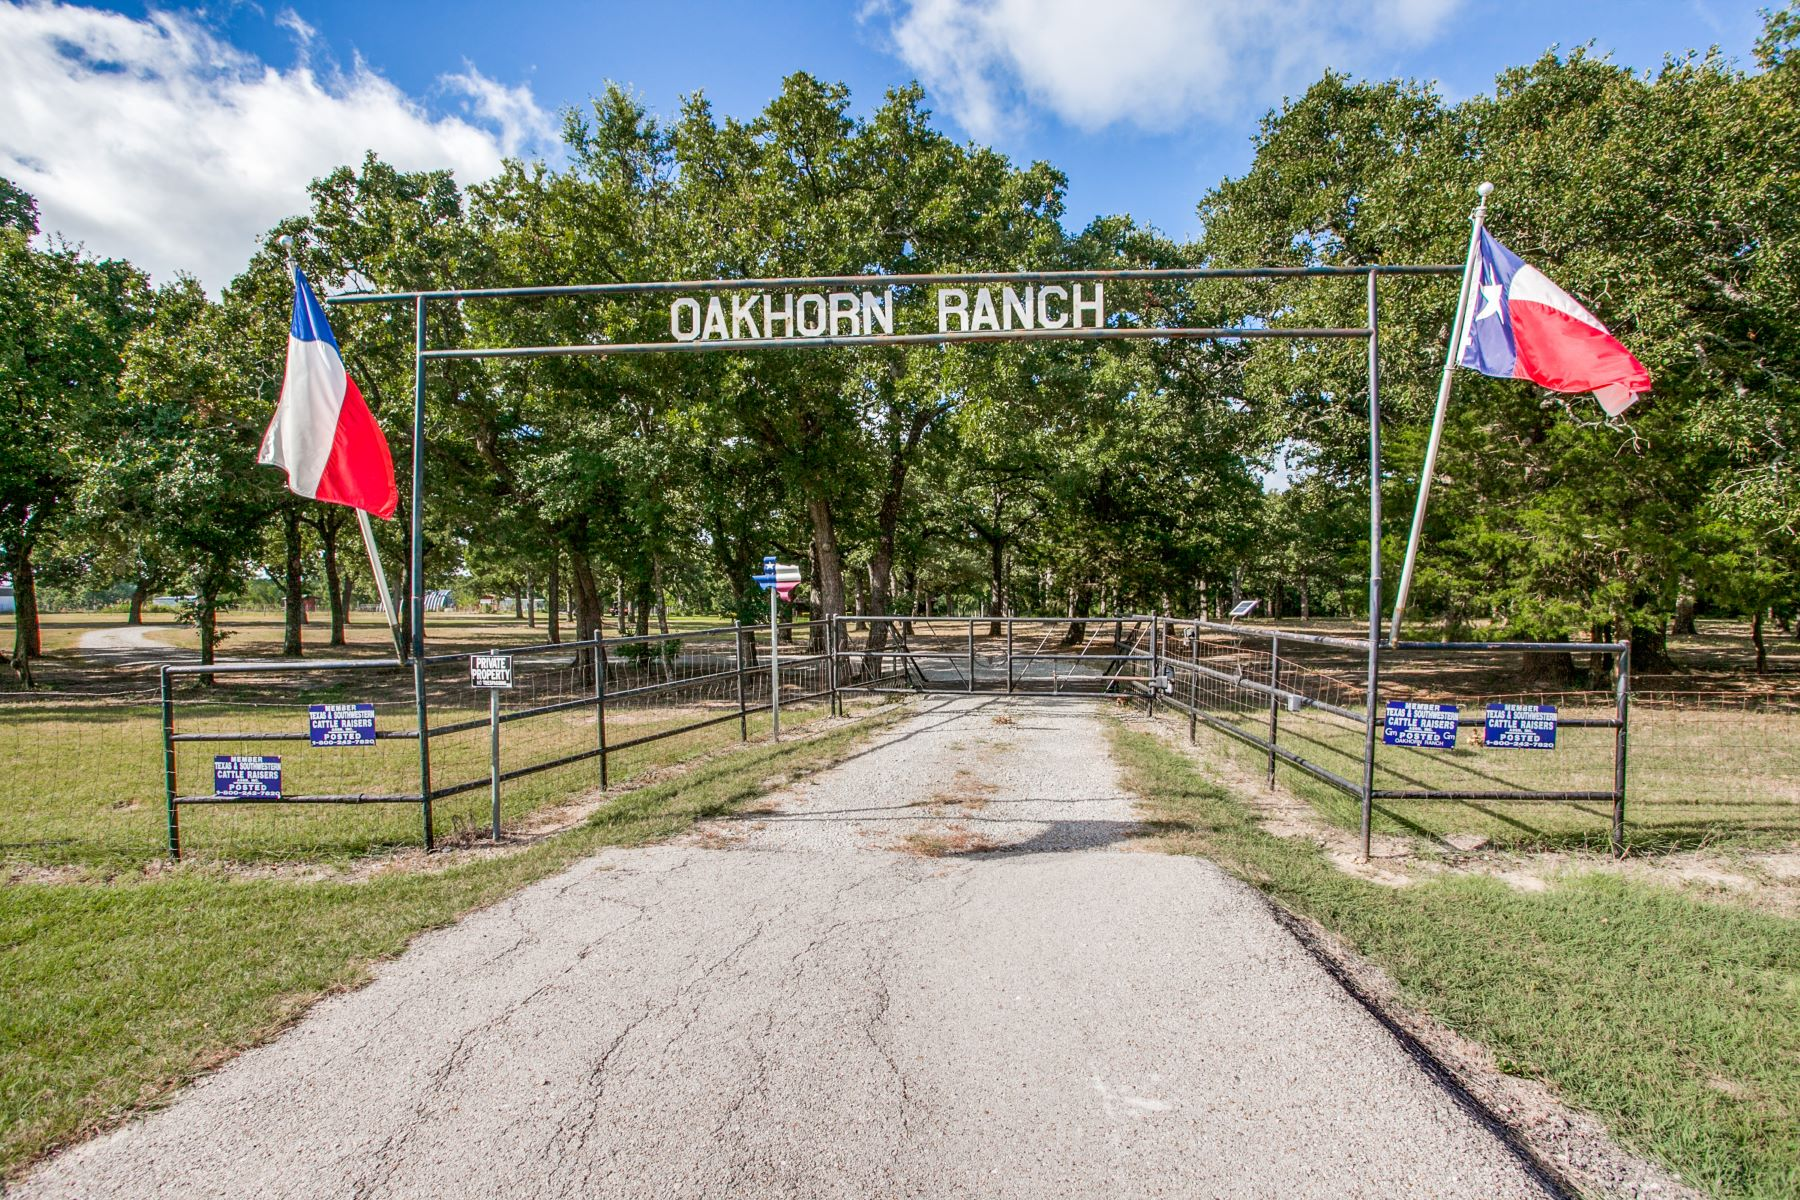 Farm / Ranch / Plantation for Sale at Oak Horn Ranch 58 Acres 10035 W. FM 744 Barry, Texas 75102 United States